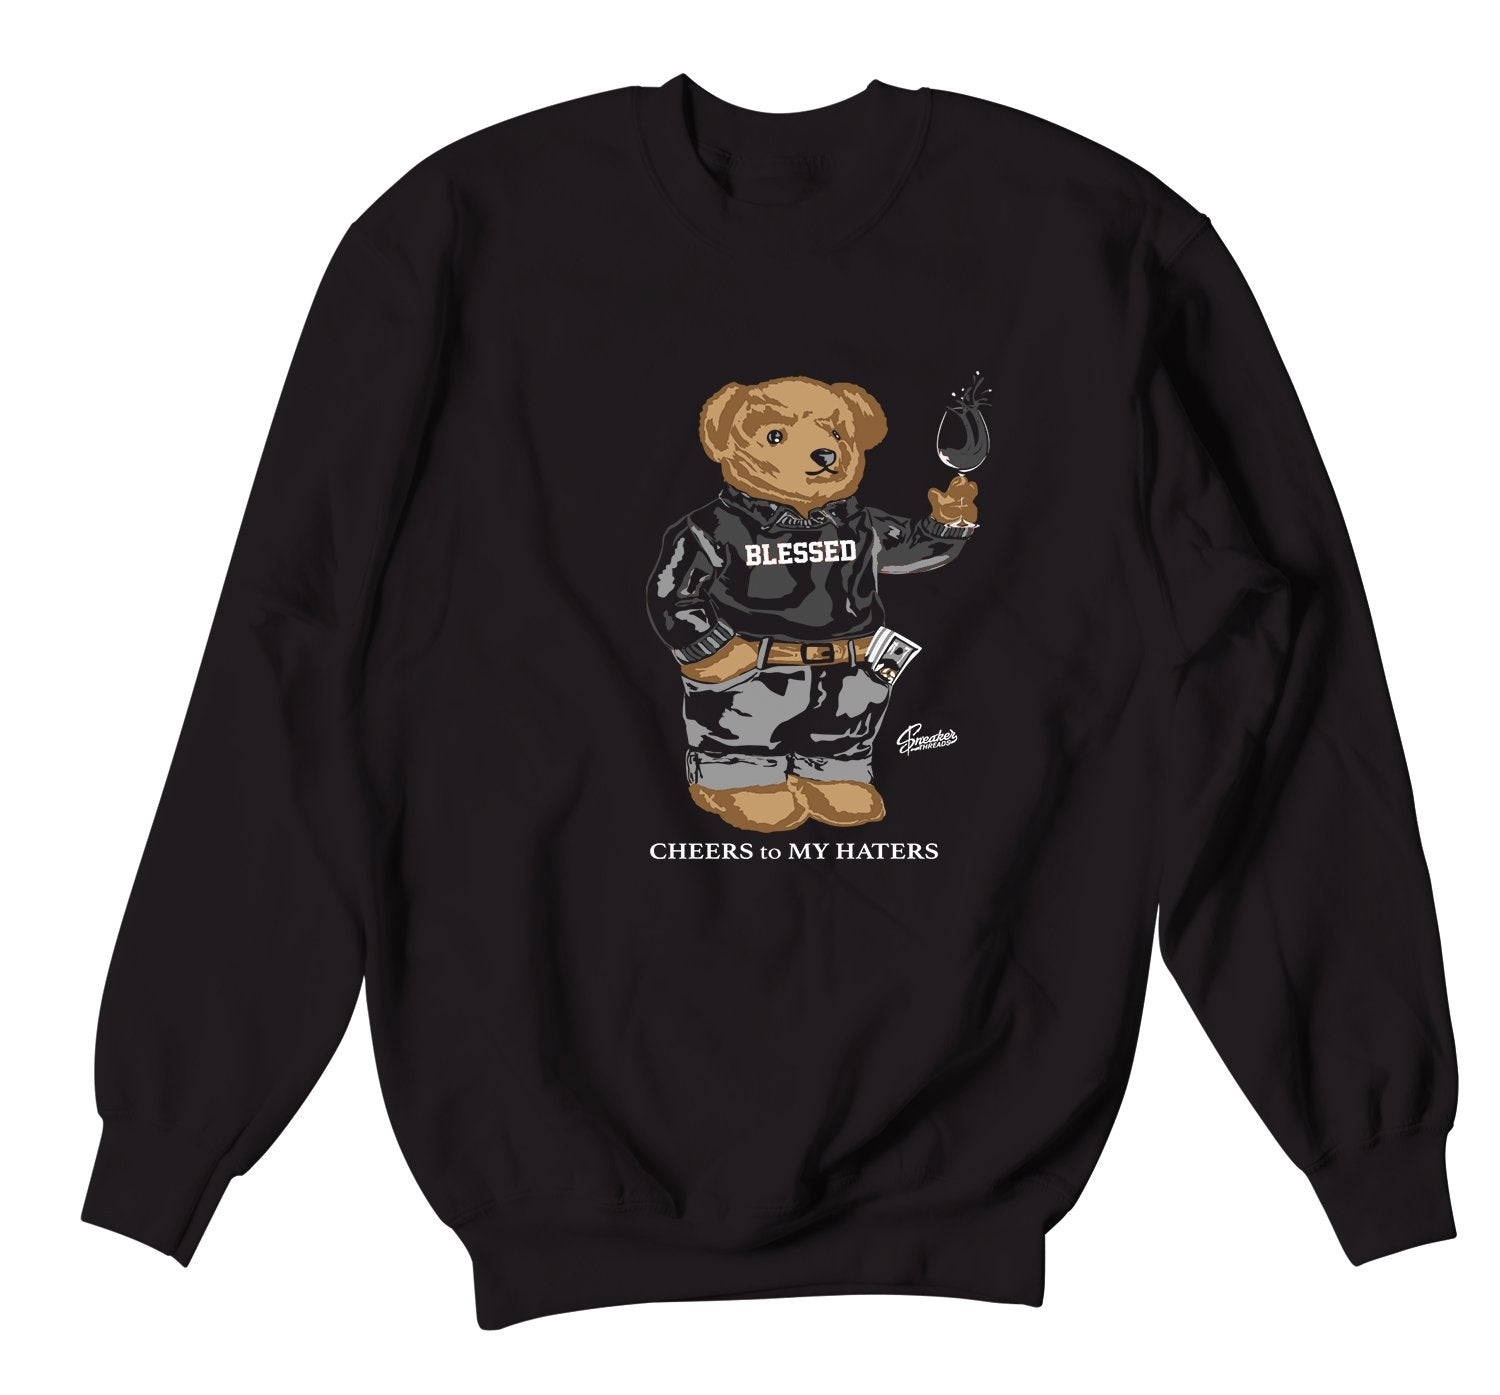 Black cat Jordan 4s have matching crewnecks collection